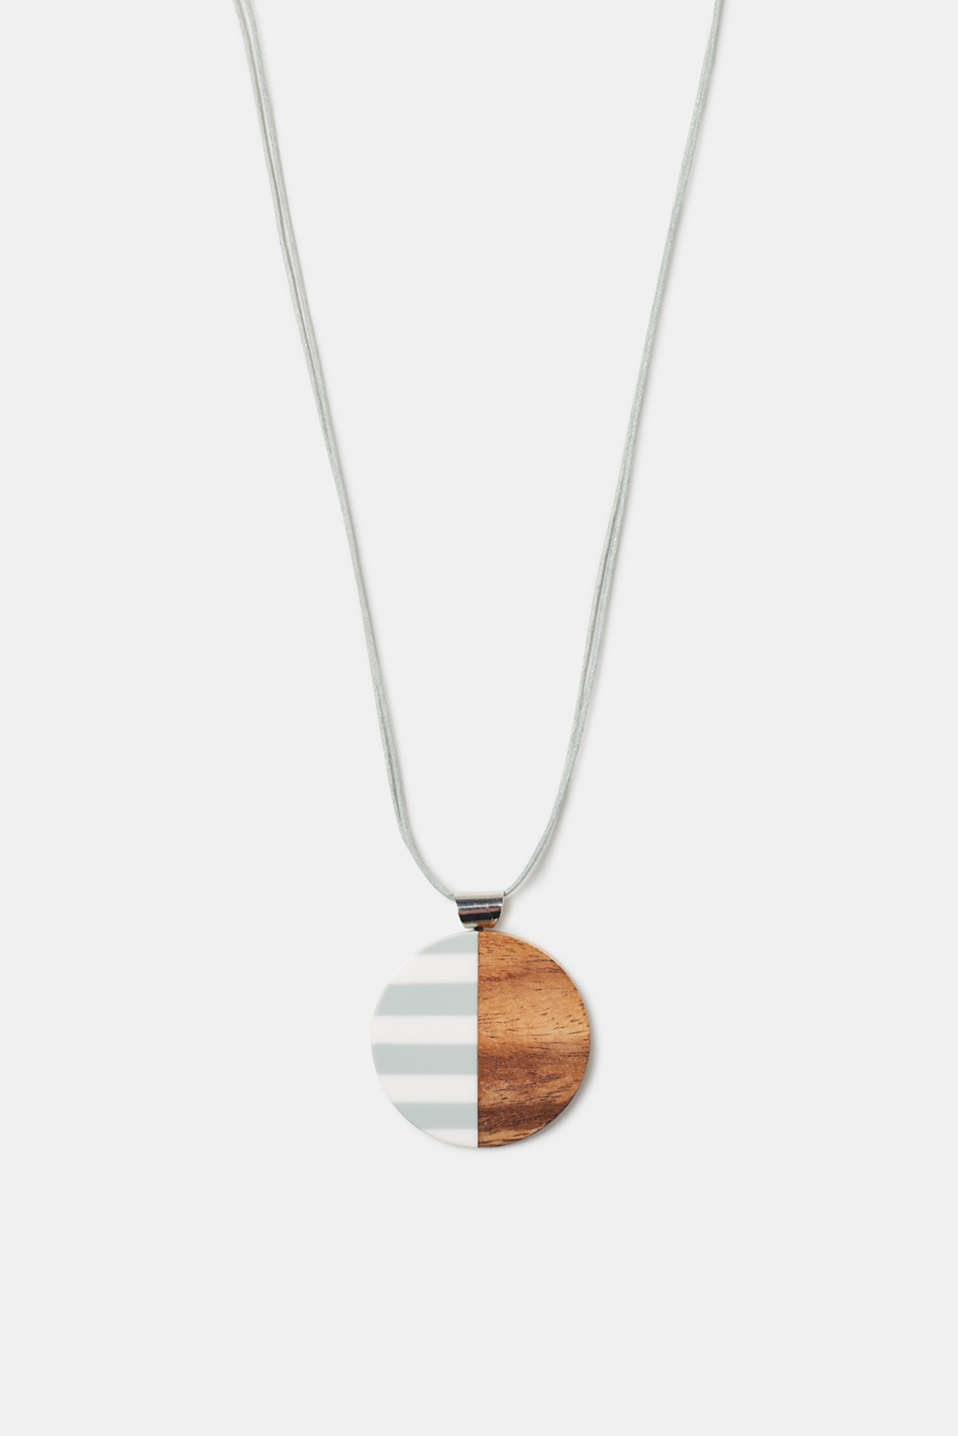 Esprit - Long necklace with a round pendant